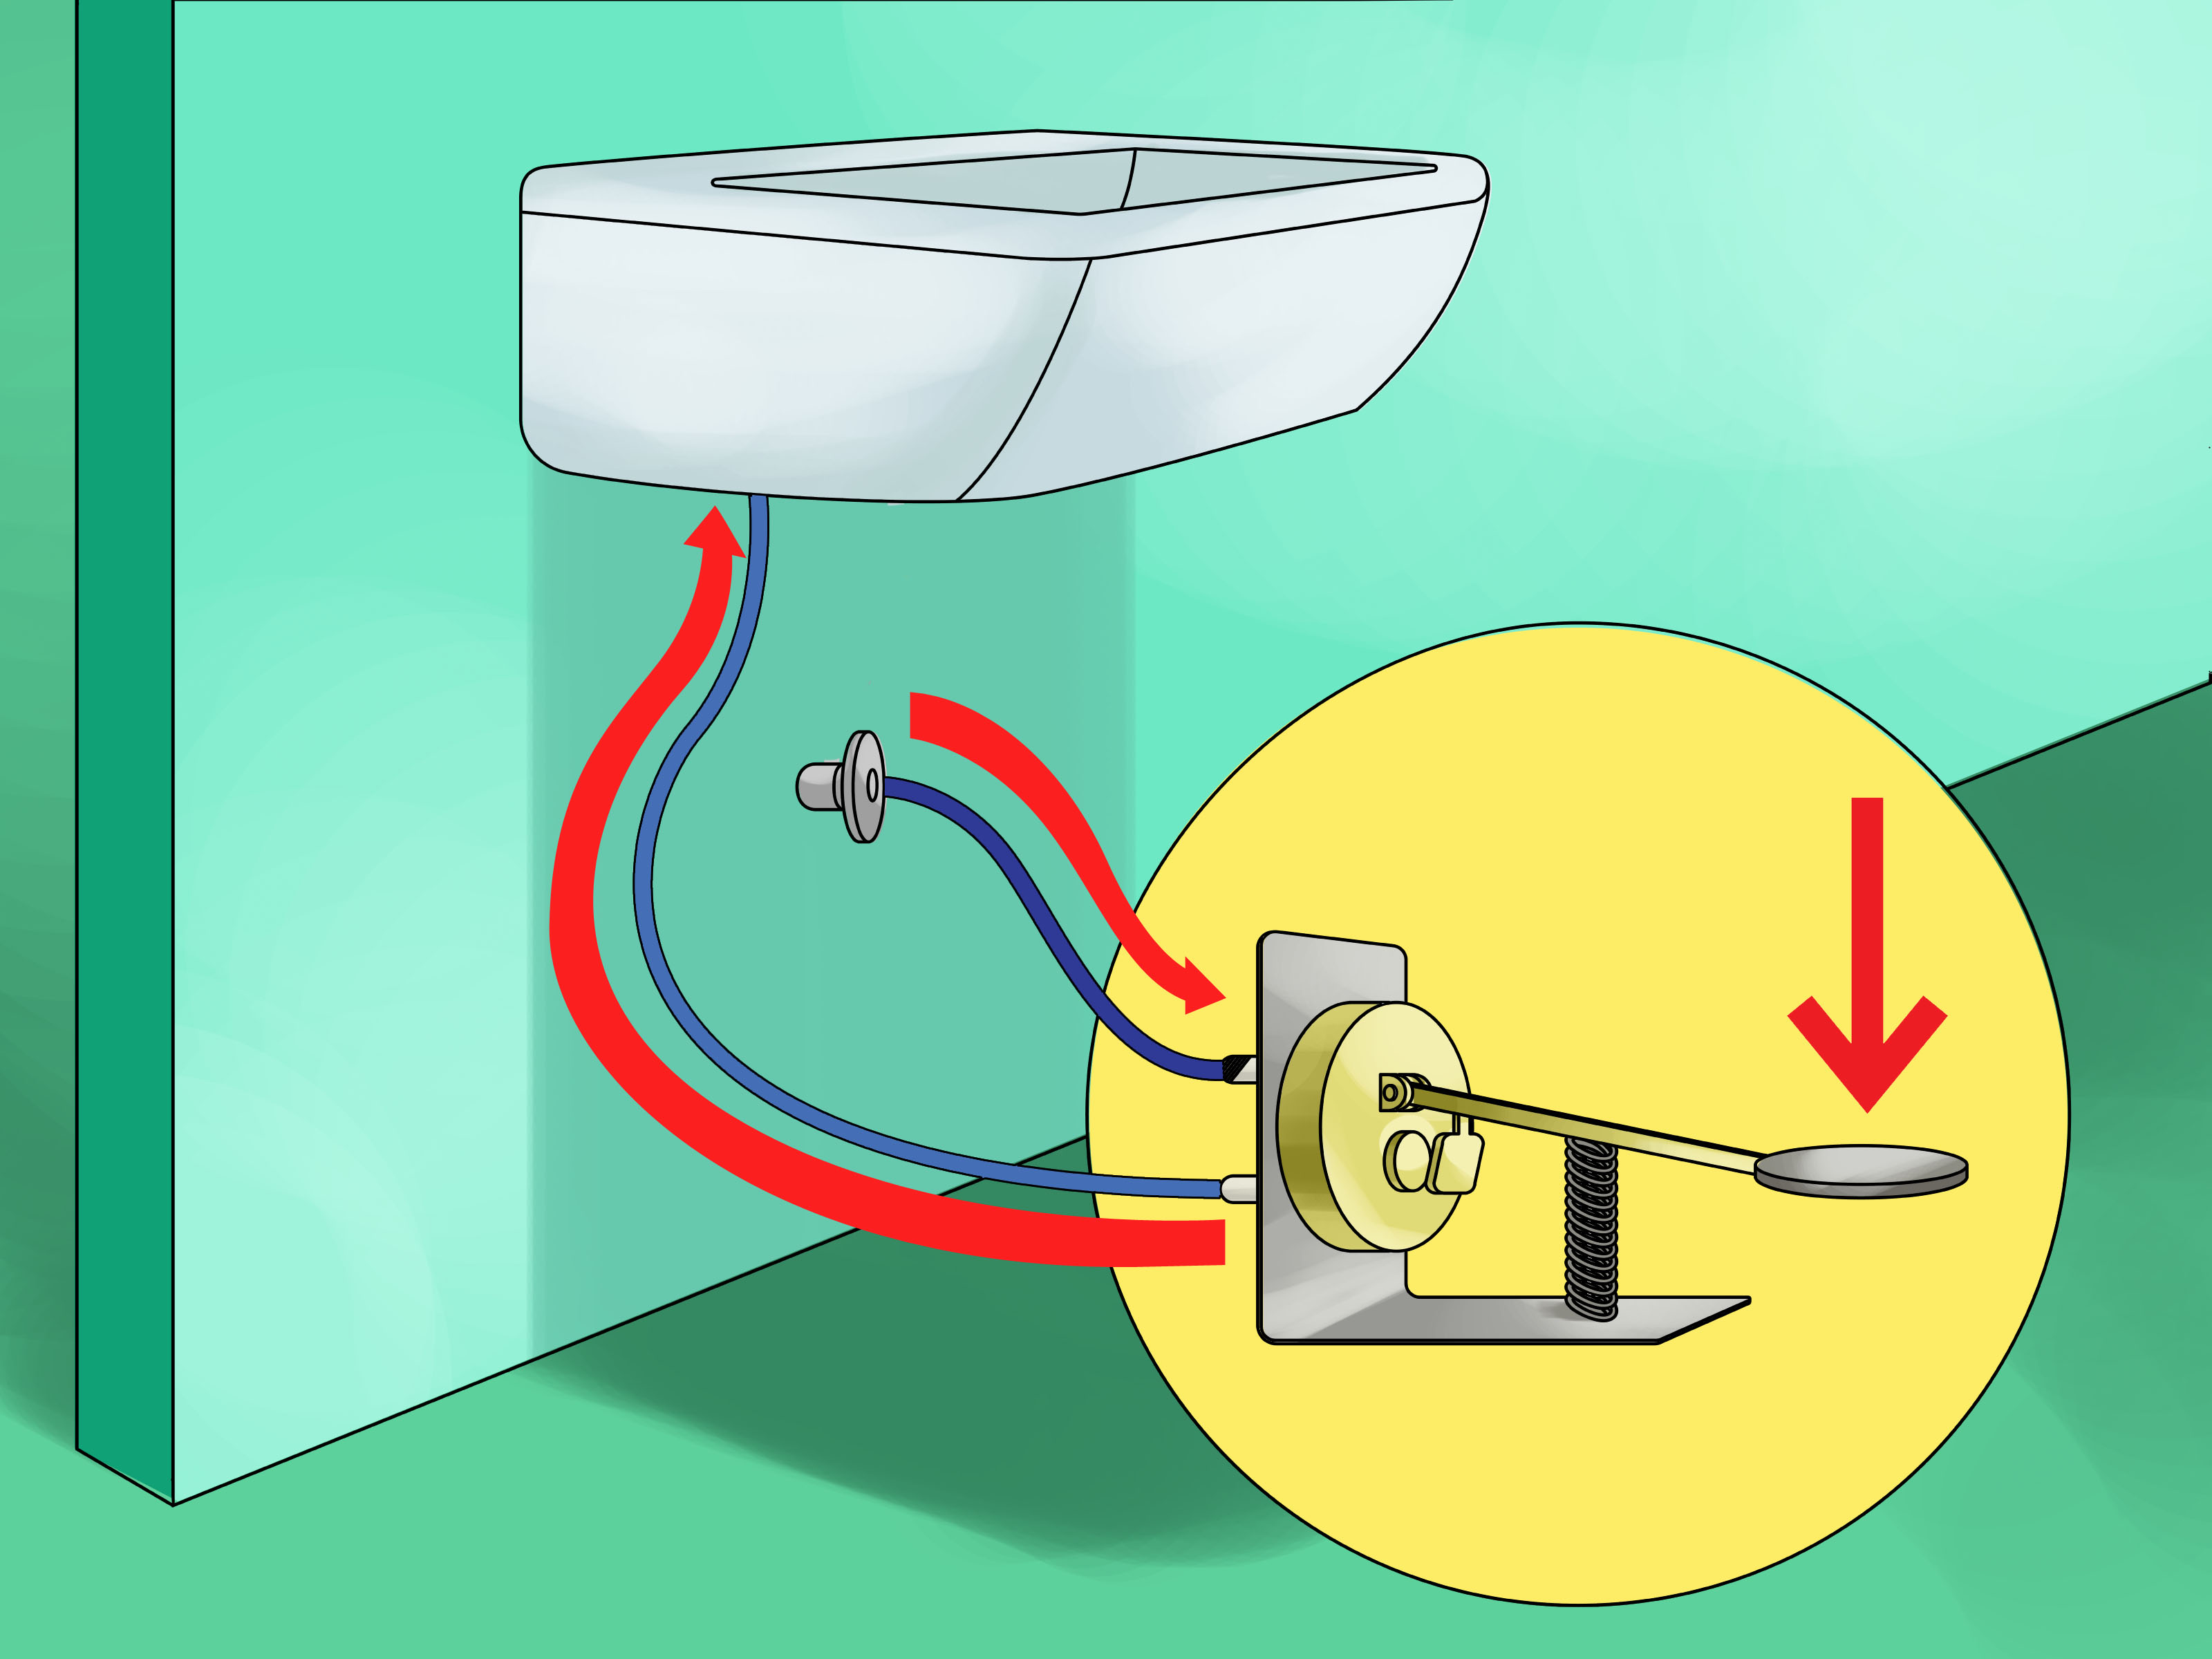 Faucet clipart water treatment. How to make foot